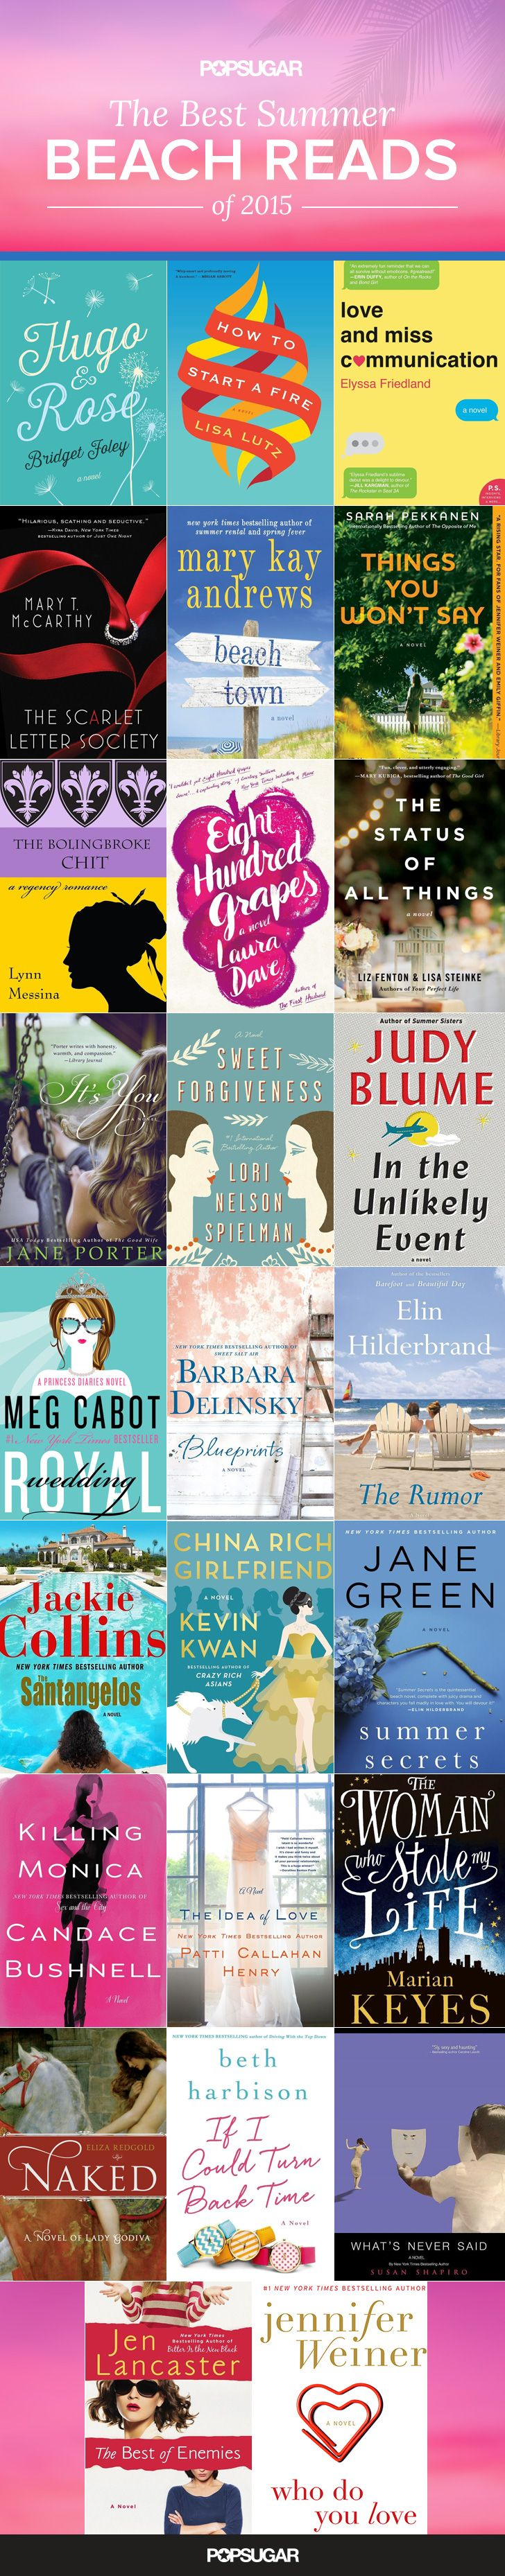 26 of the Hottest New Books You'll Want to Read This Summer